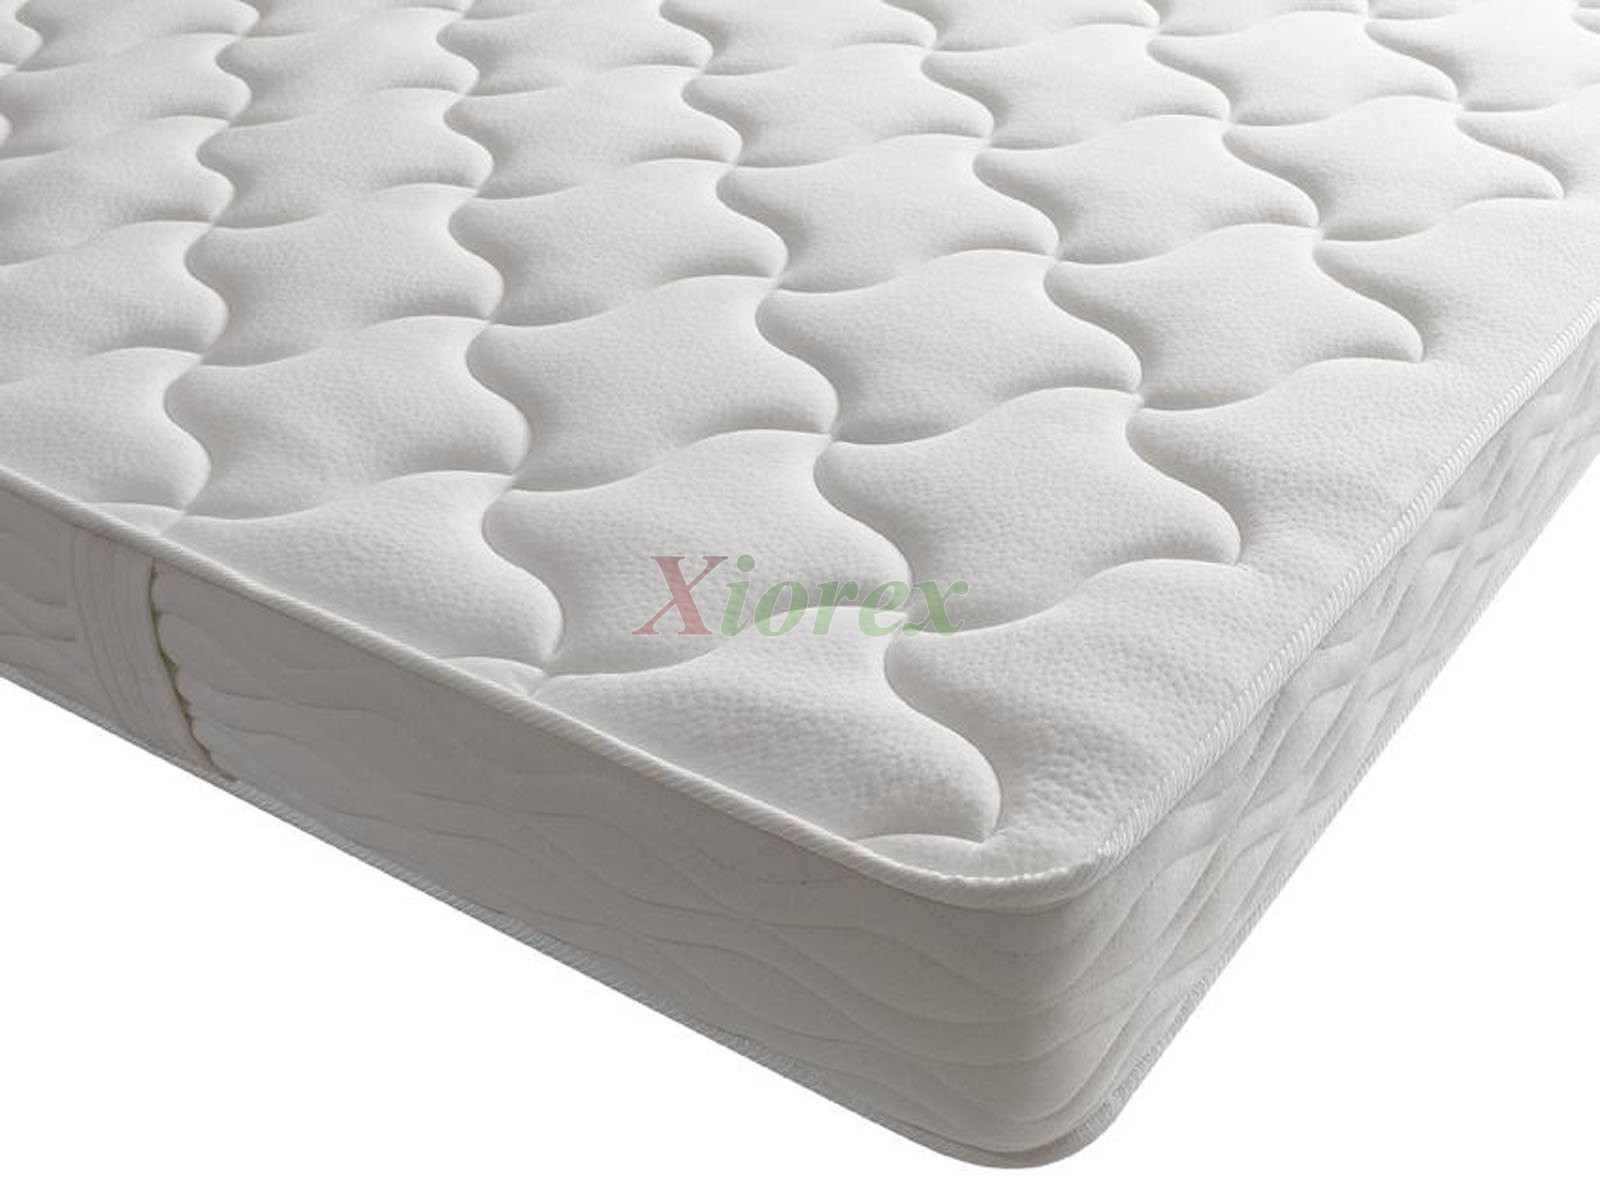 Cheapest Topper Cover And Classic Contour Pillow And Cal-King 1.25 Inch Thick 4 Pound Density Visco Elastic Memory Foam... Online